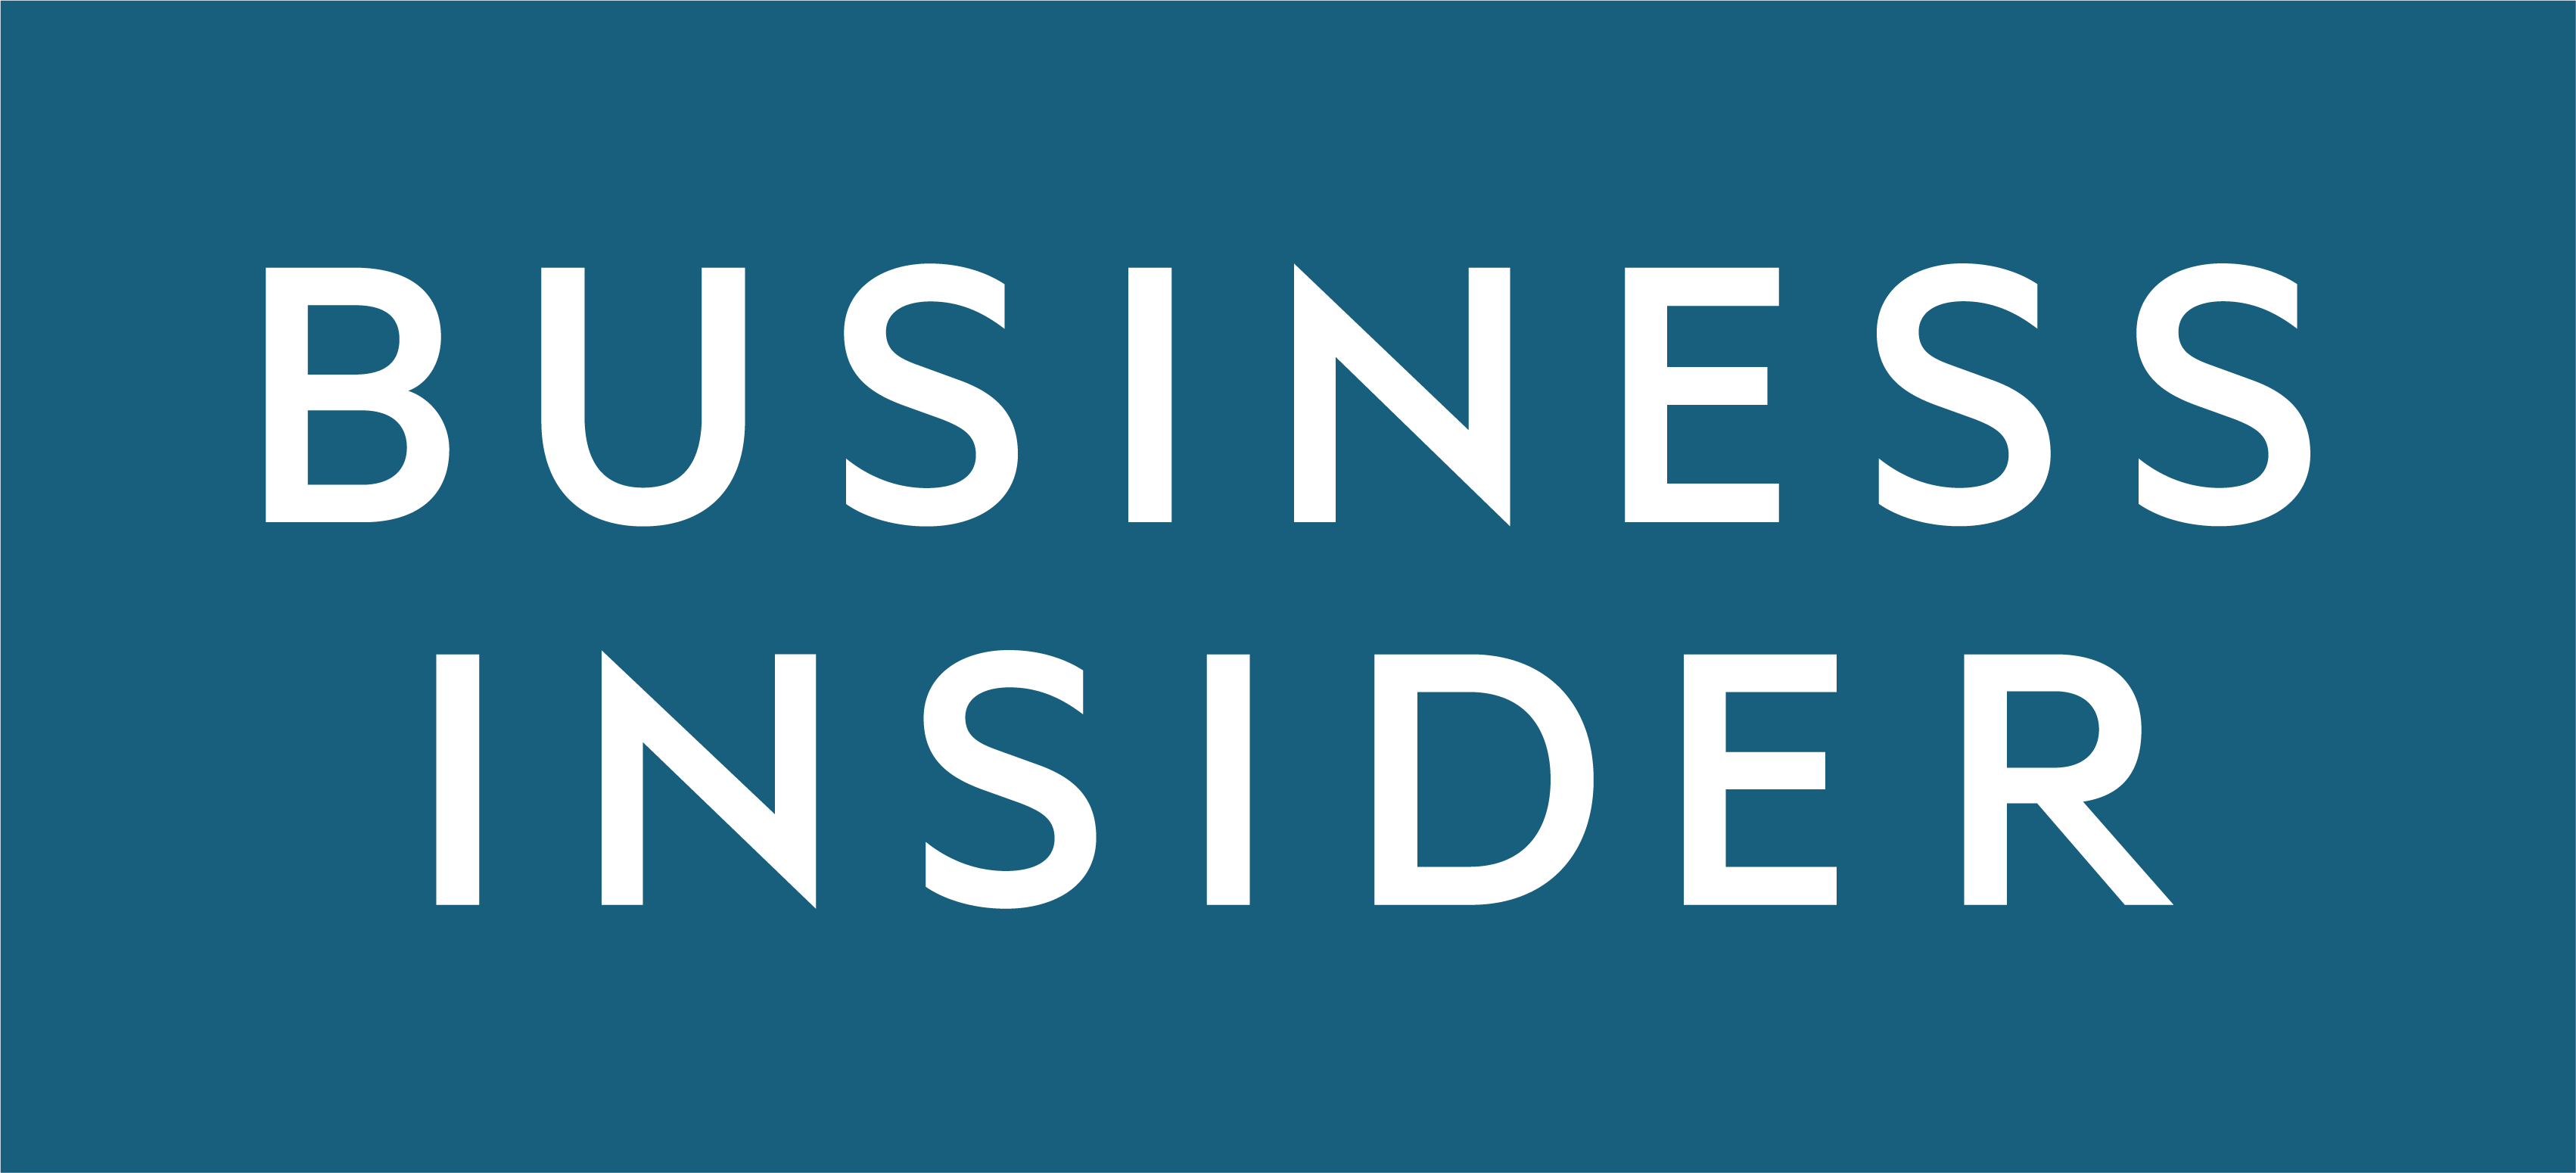 Fiix in Business Insider